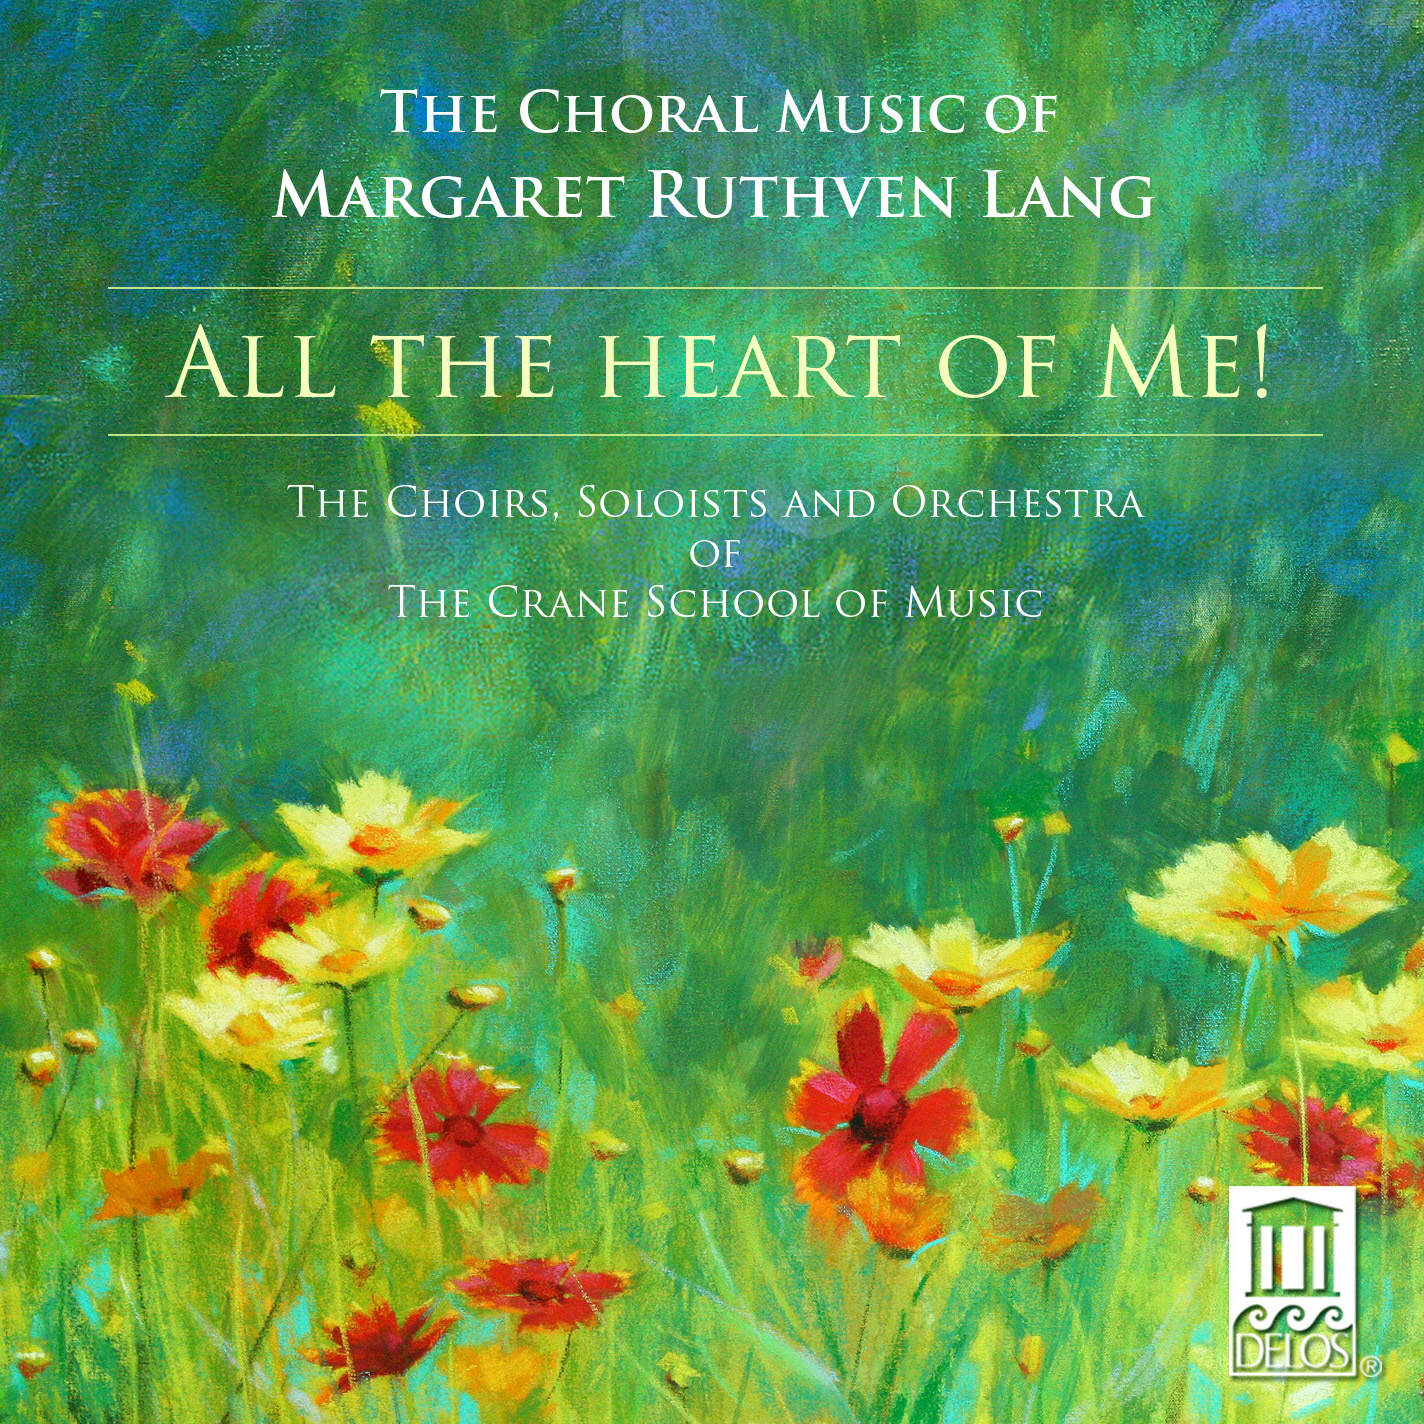 All the Heart of Me: The Choral Music of Margaret Ruthven Lang